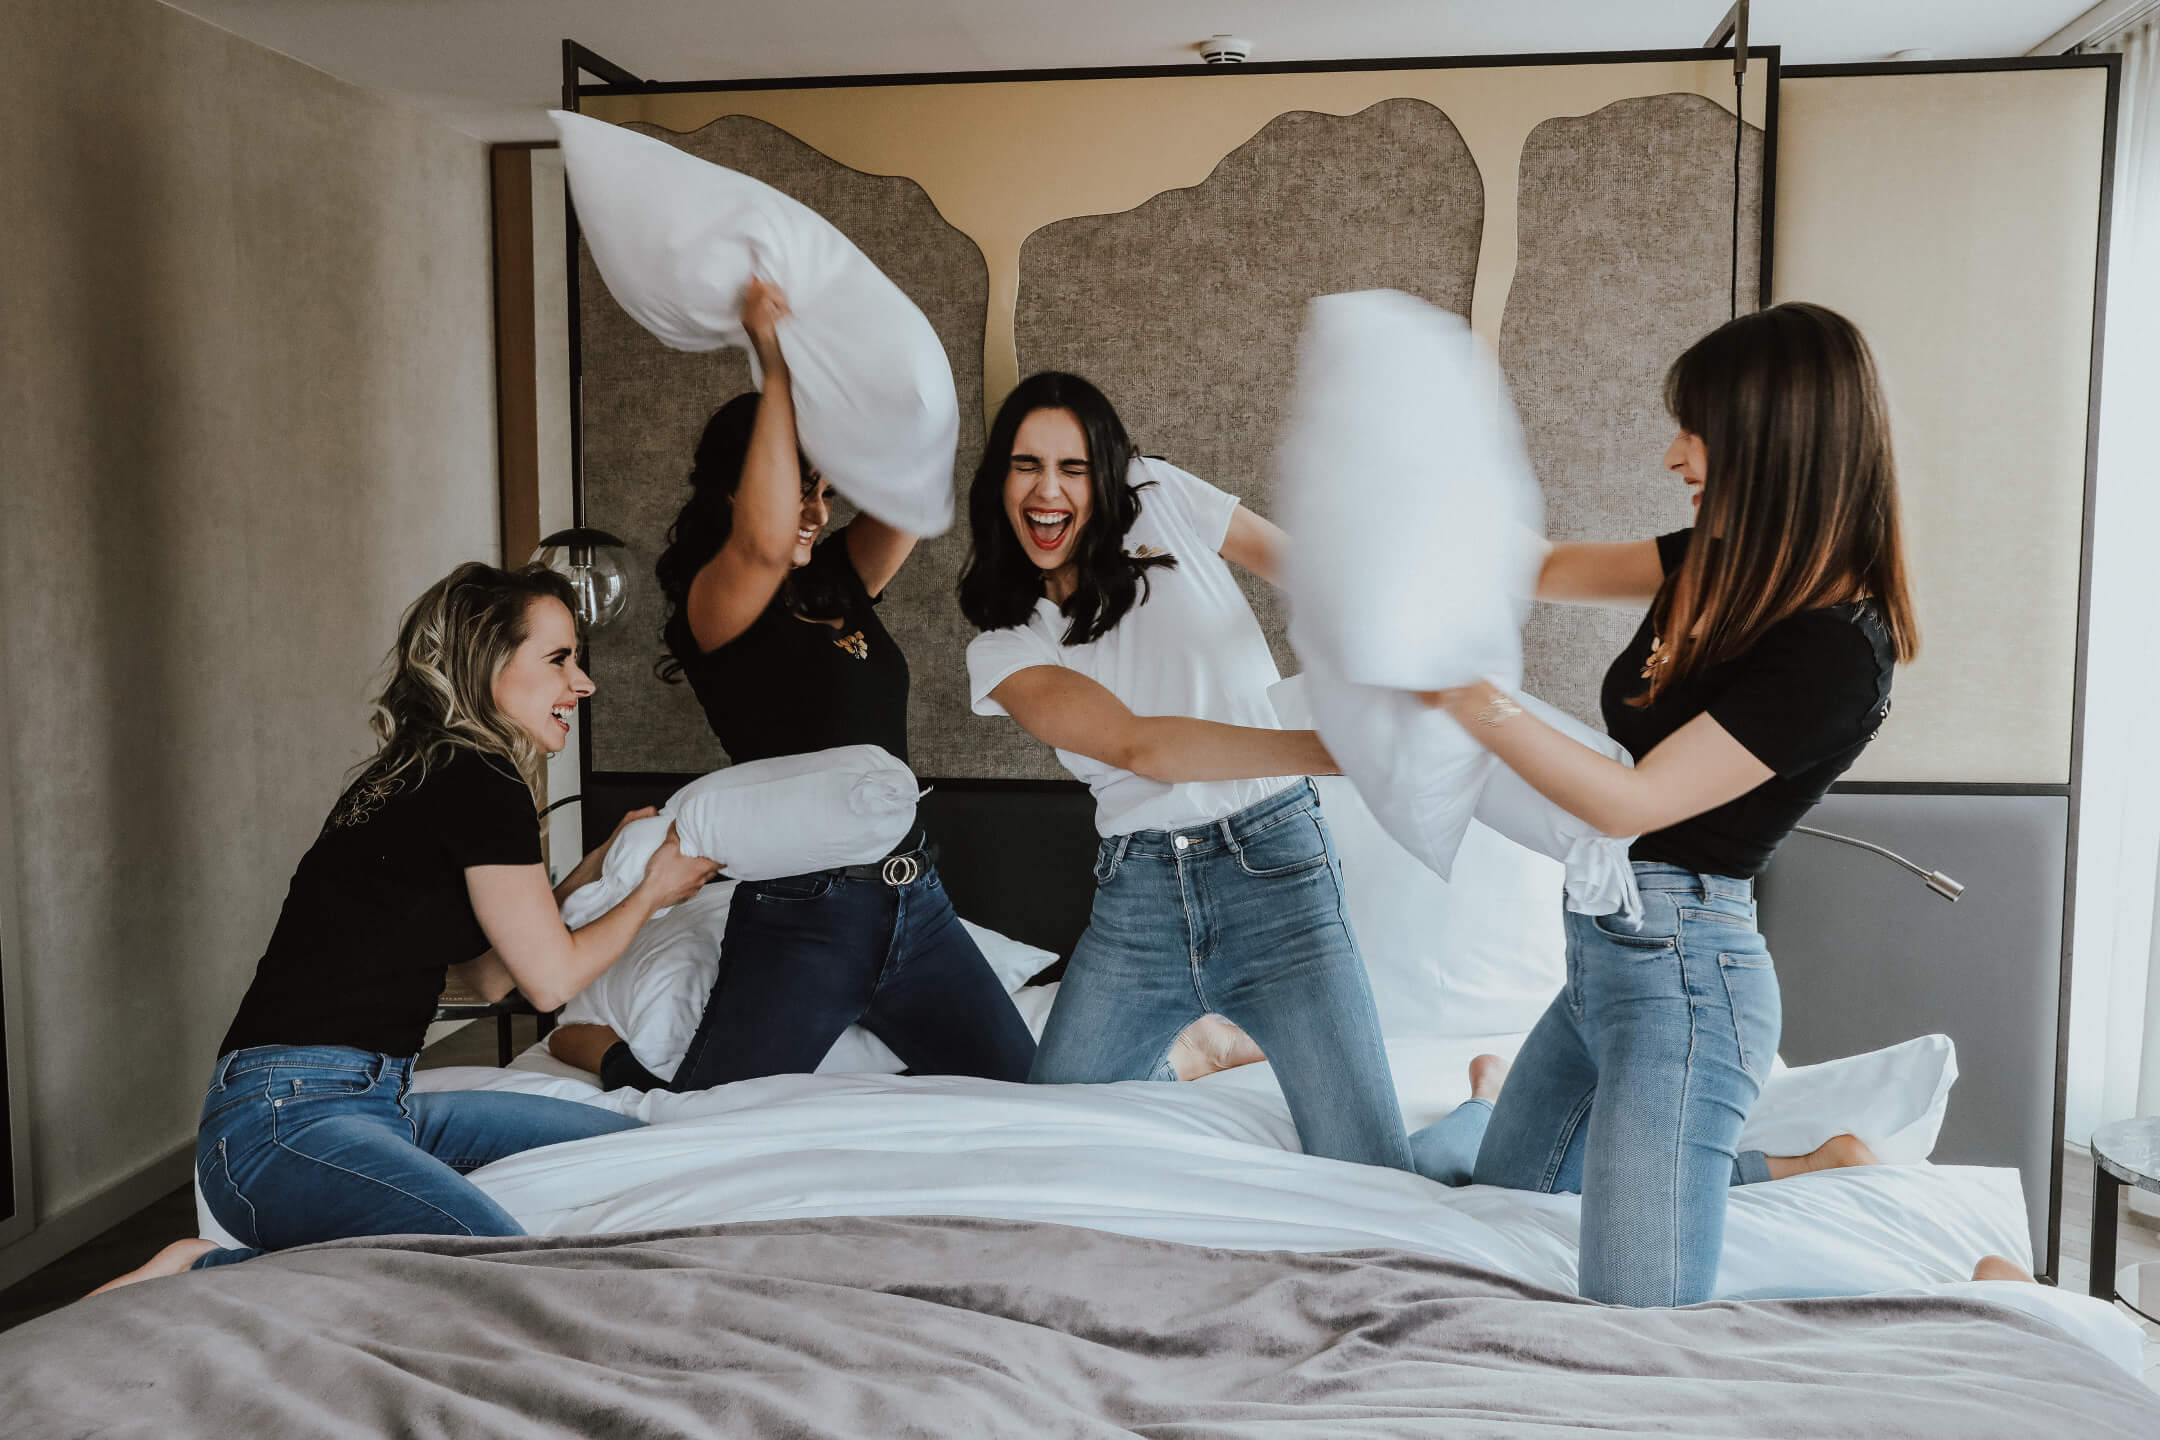 Pillow fight bride and bridemaids in the Gran suite at the ATLANTIC Grand Hotel Bremen